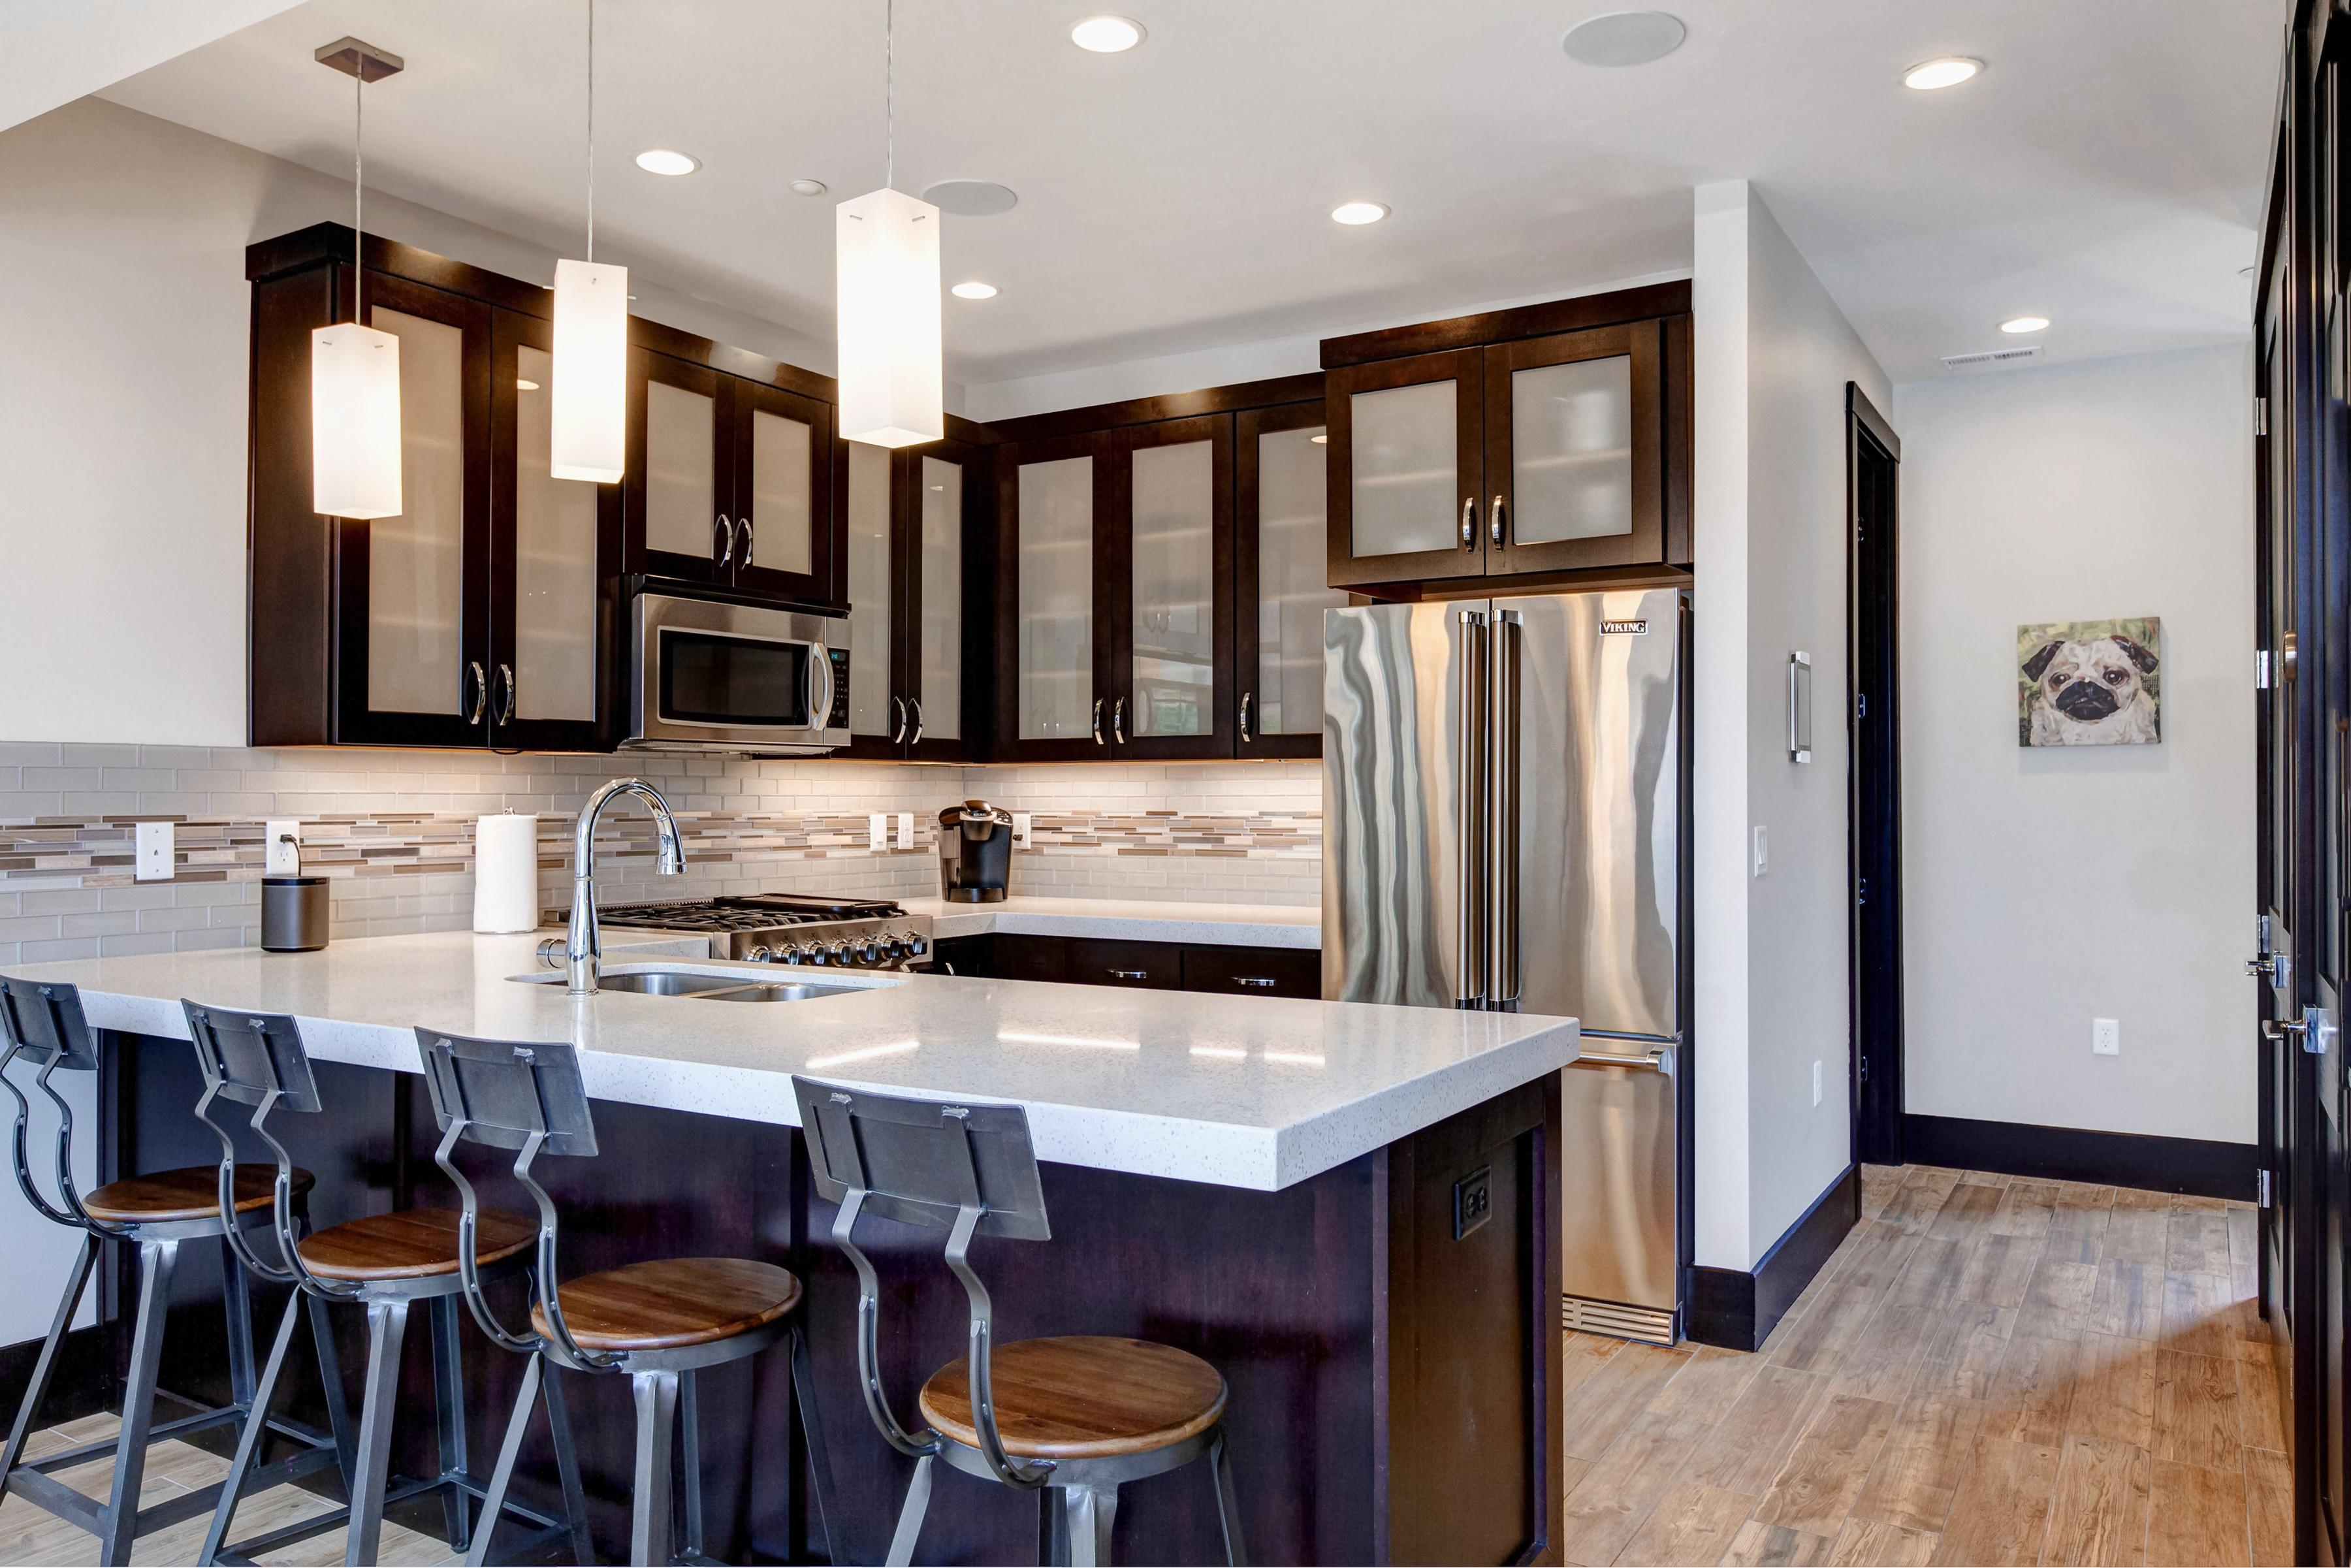 Modern kitchen with stainless appliances and counter seating for 4.